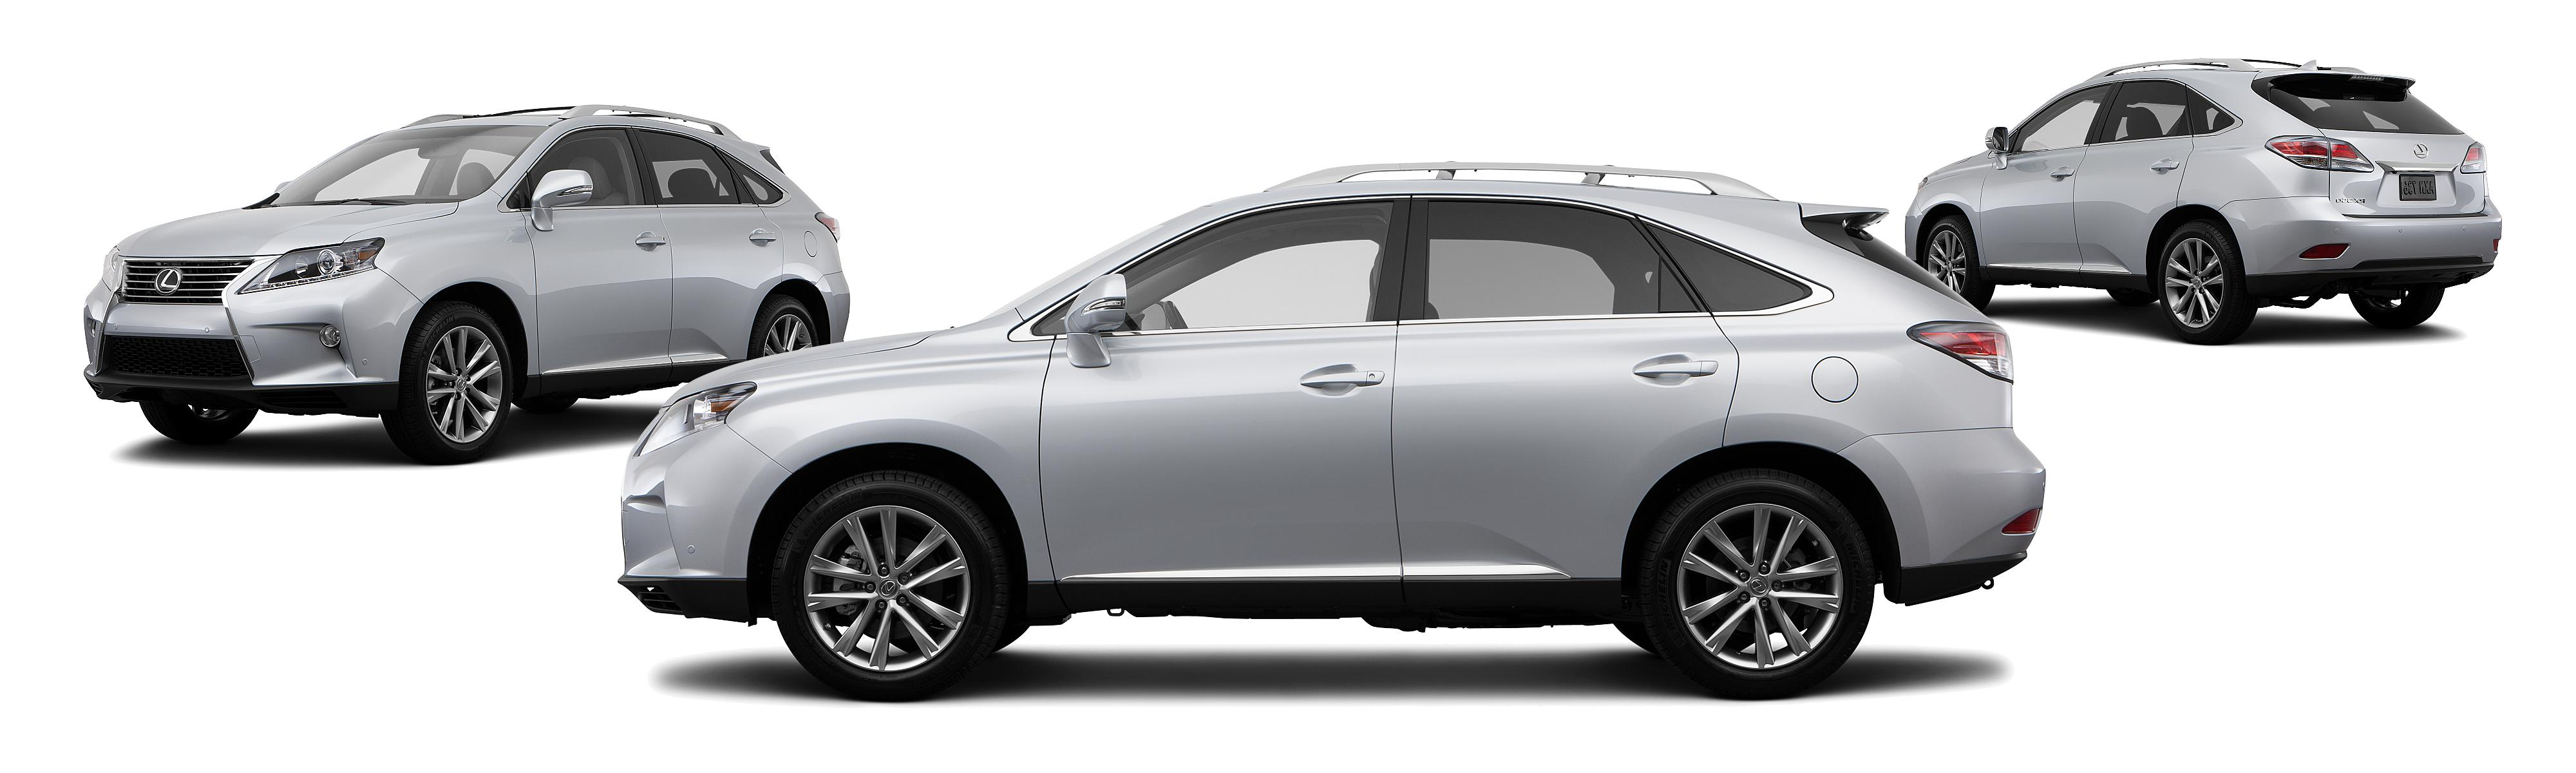 2014 Lexus RX 350 4dr SUV Research GrooveCar